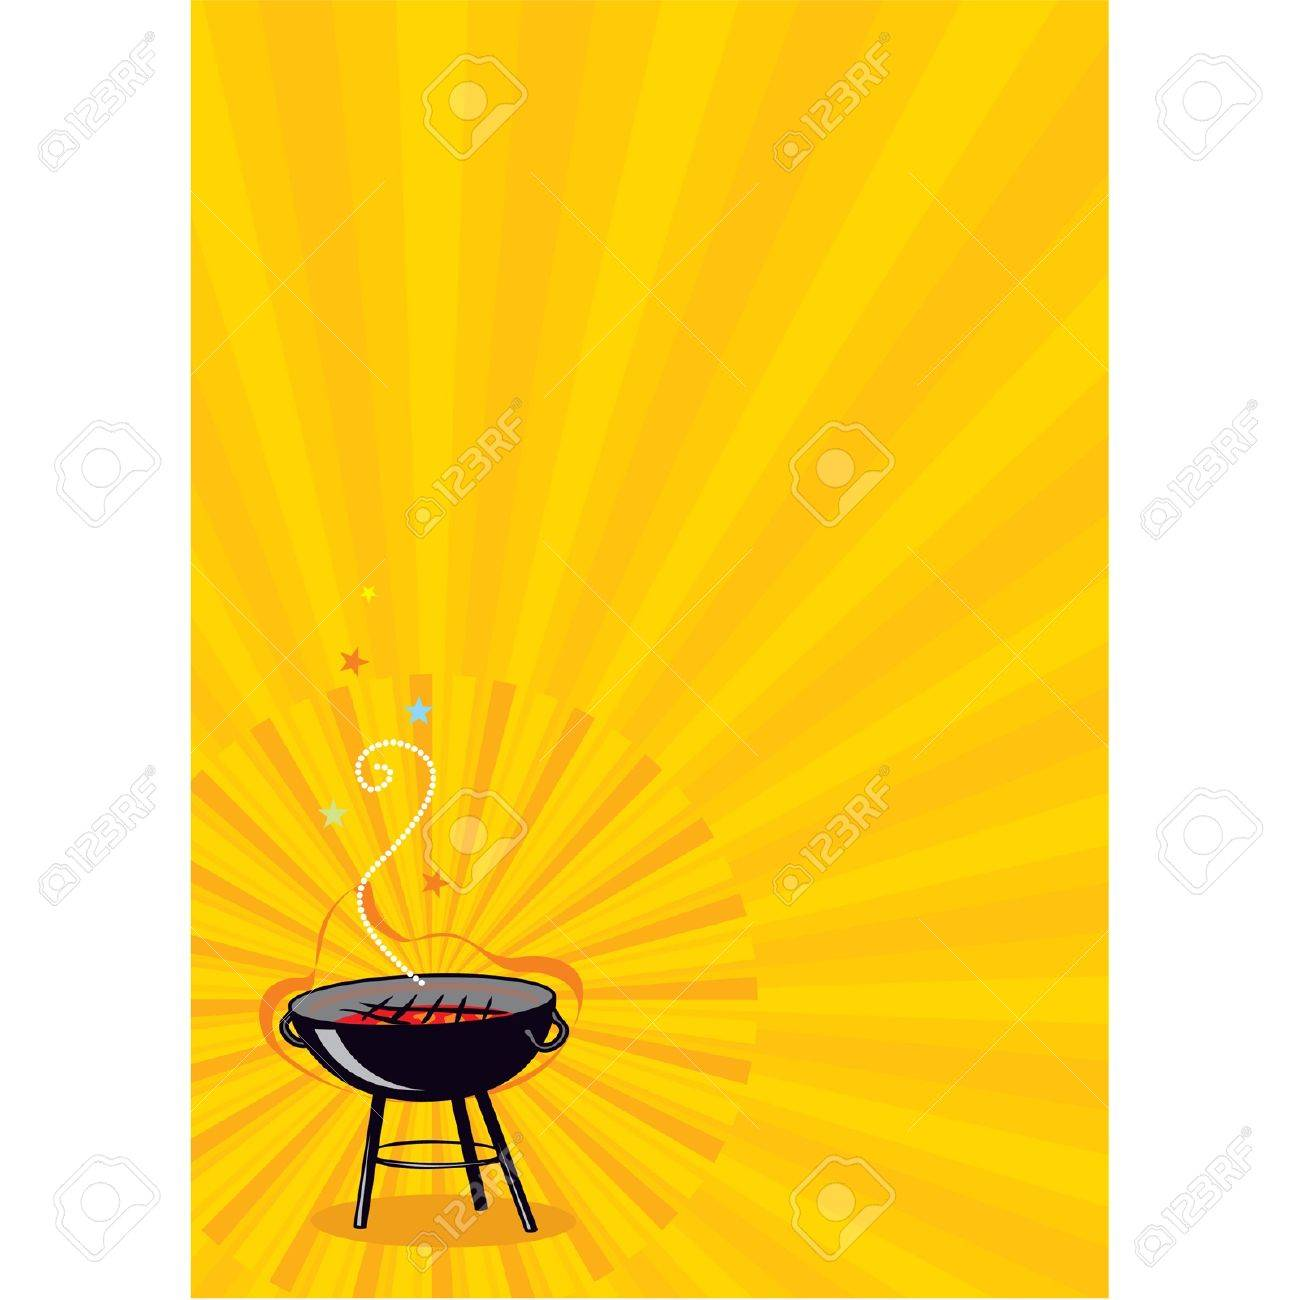 Cookout border clipart hot dog cookout invite stock vector art - Bbq Background Vector Barbecue Copy Space Poster